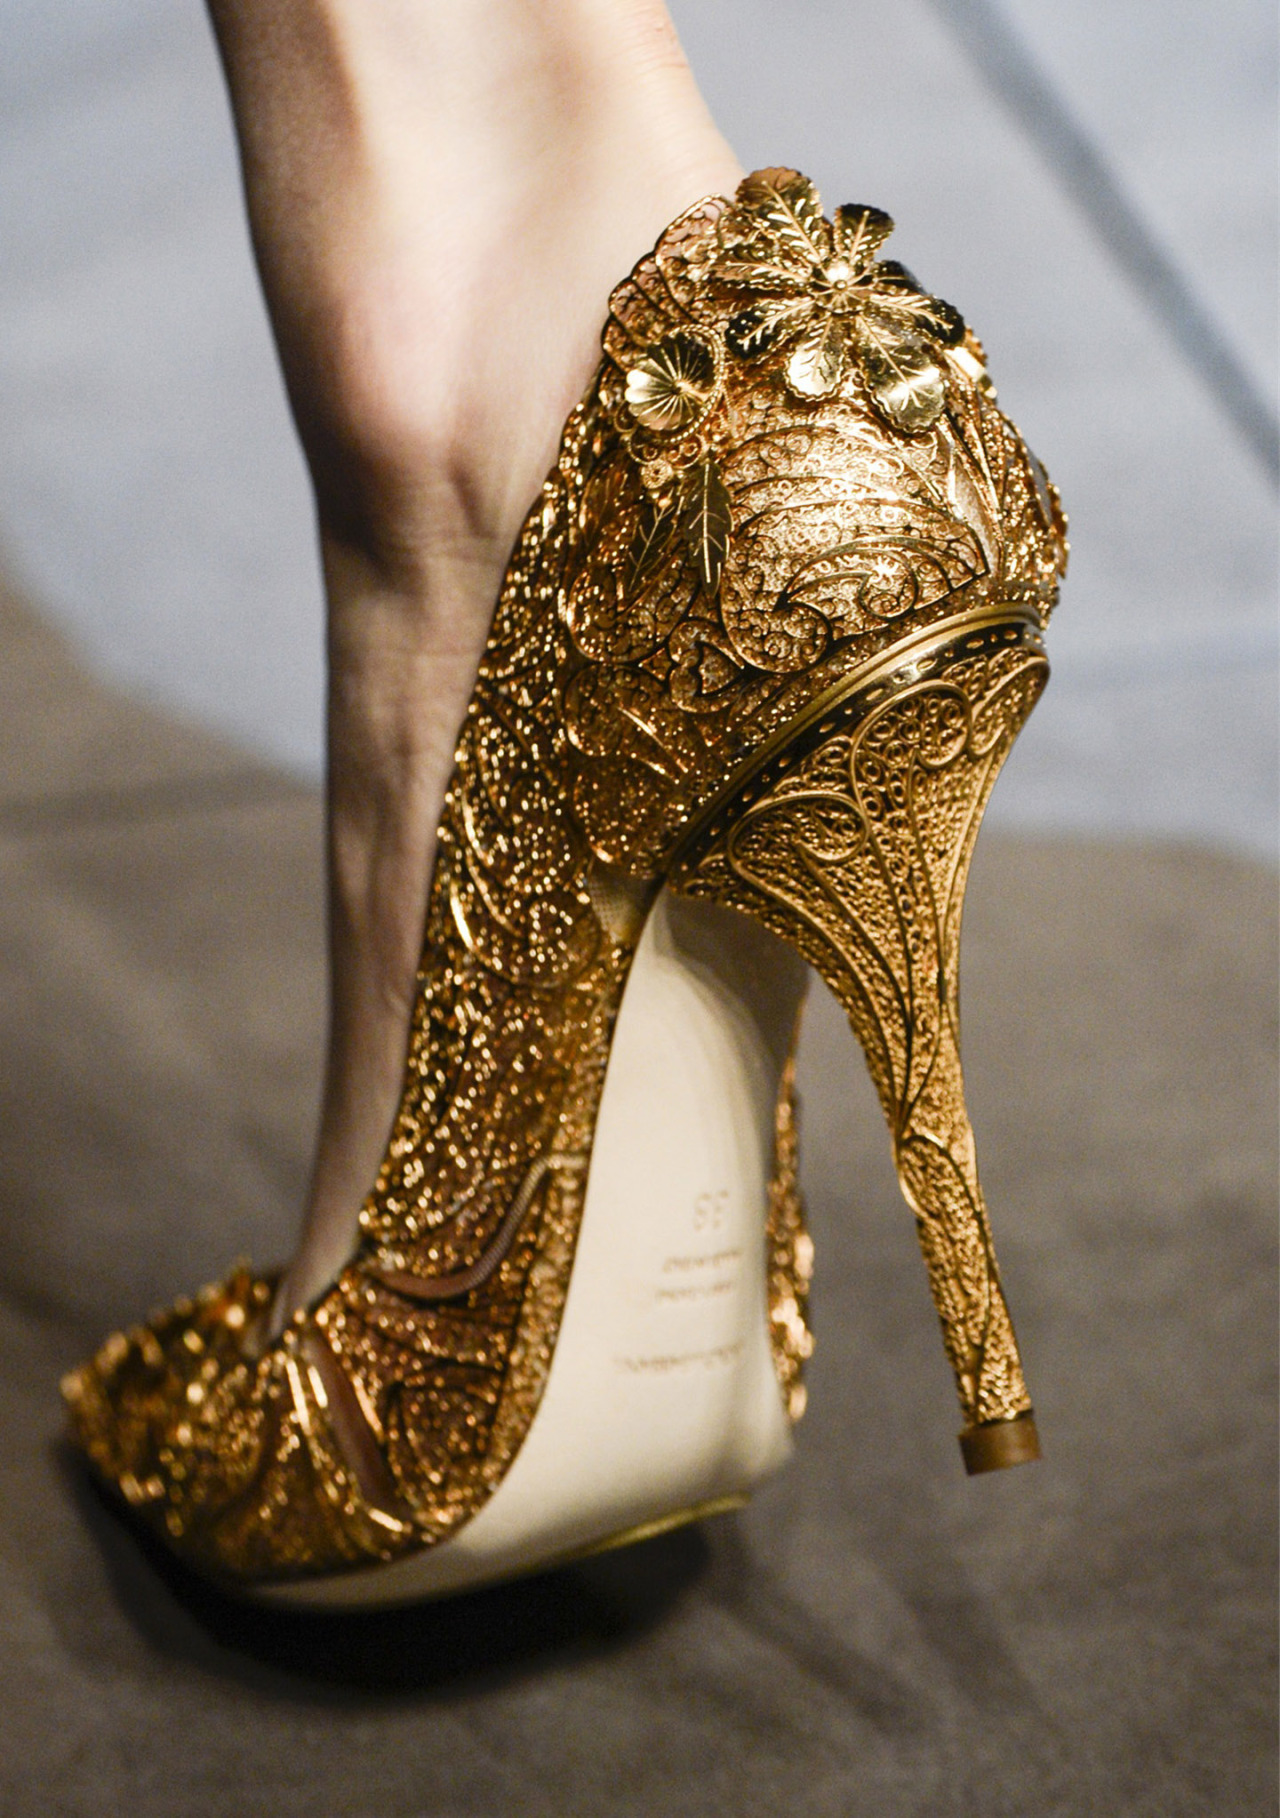 the-absolute-best-photography:  Dolce & Gabbana Fall/Winter 2013